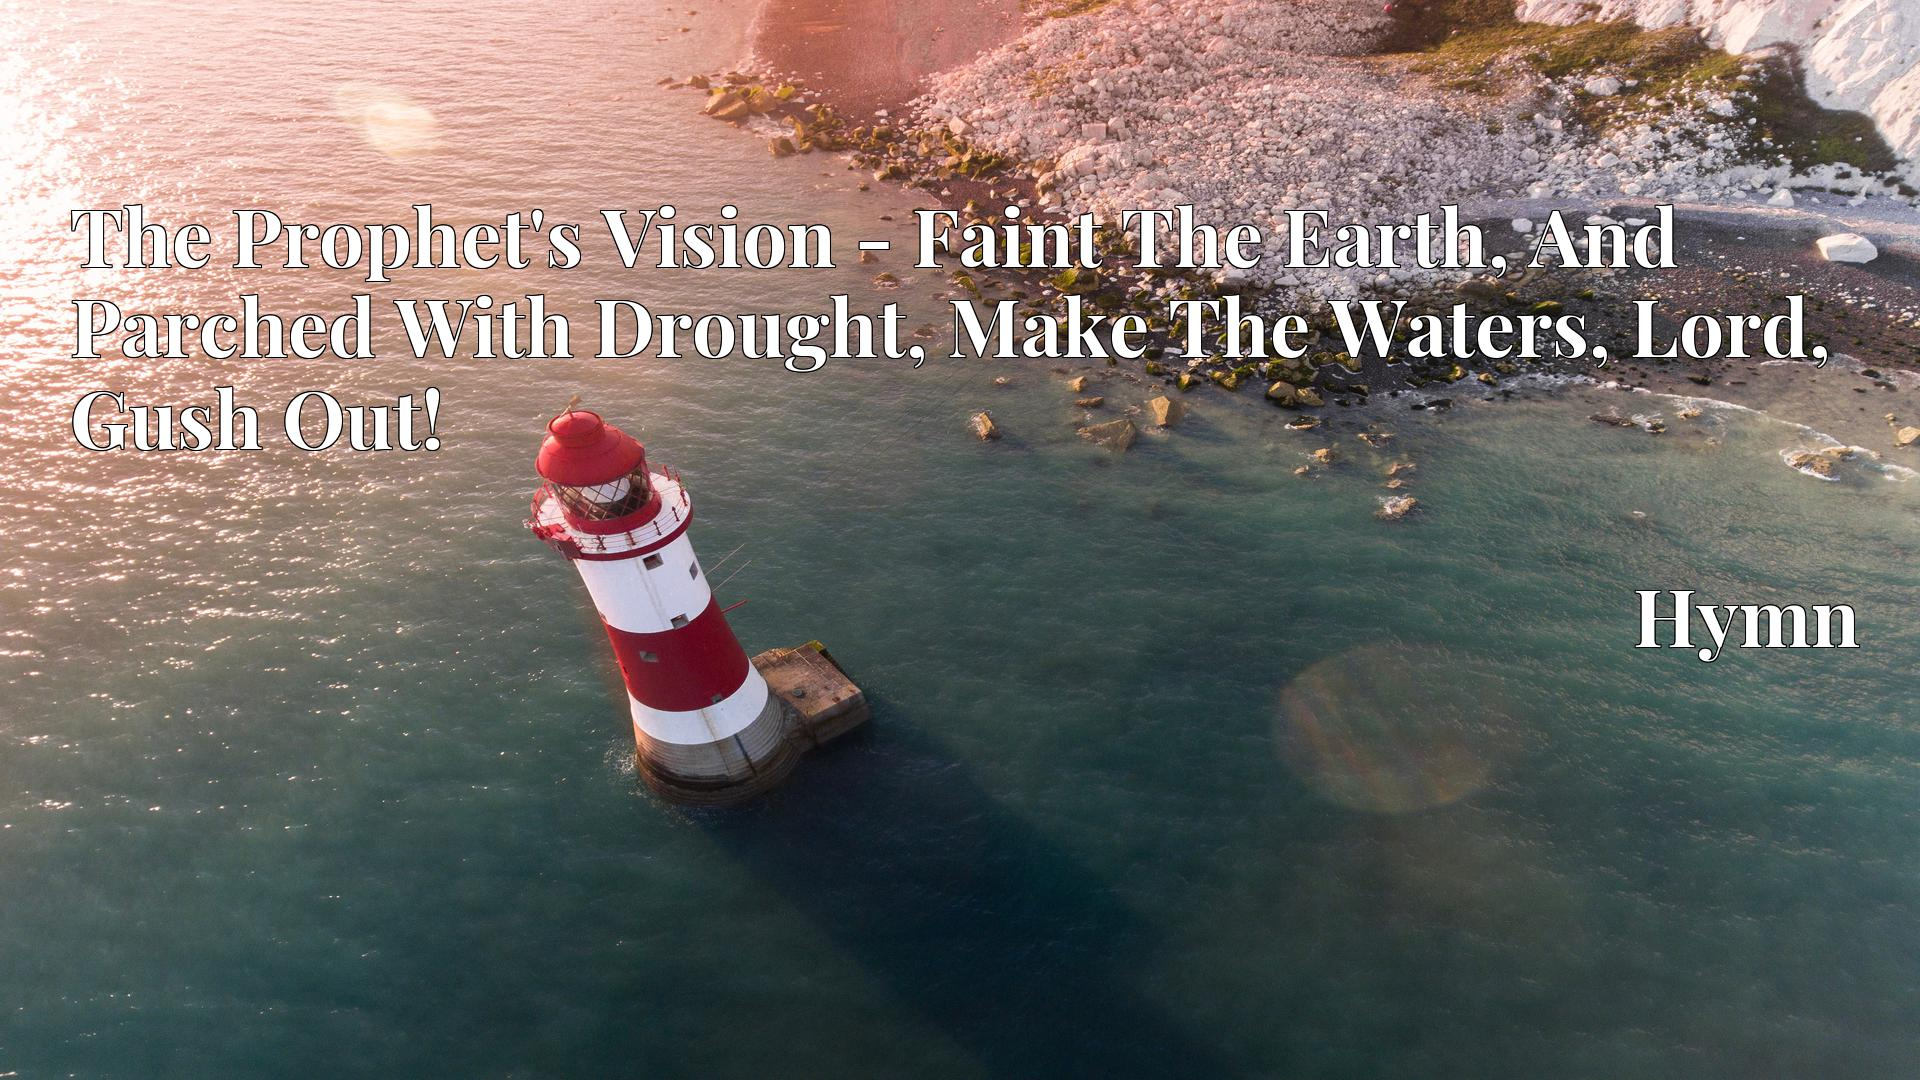 The Prophet's Vision - Faint The Earth, And Parched With Drought, Make The Waters, Lord, Gush Out! - Hymn